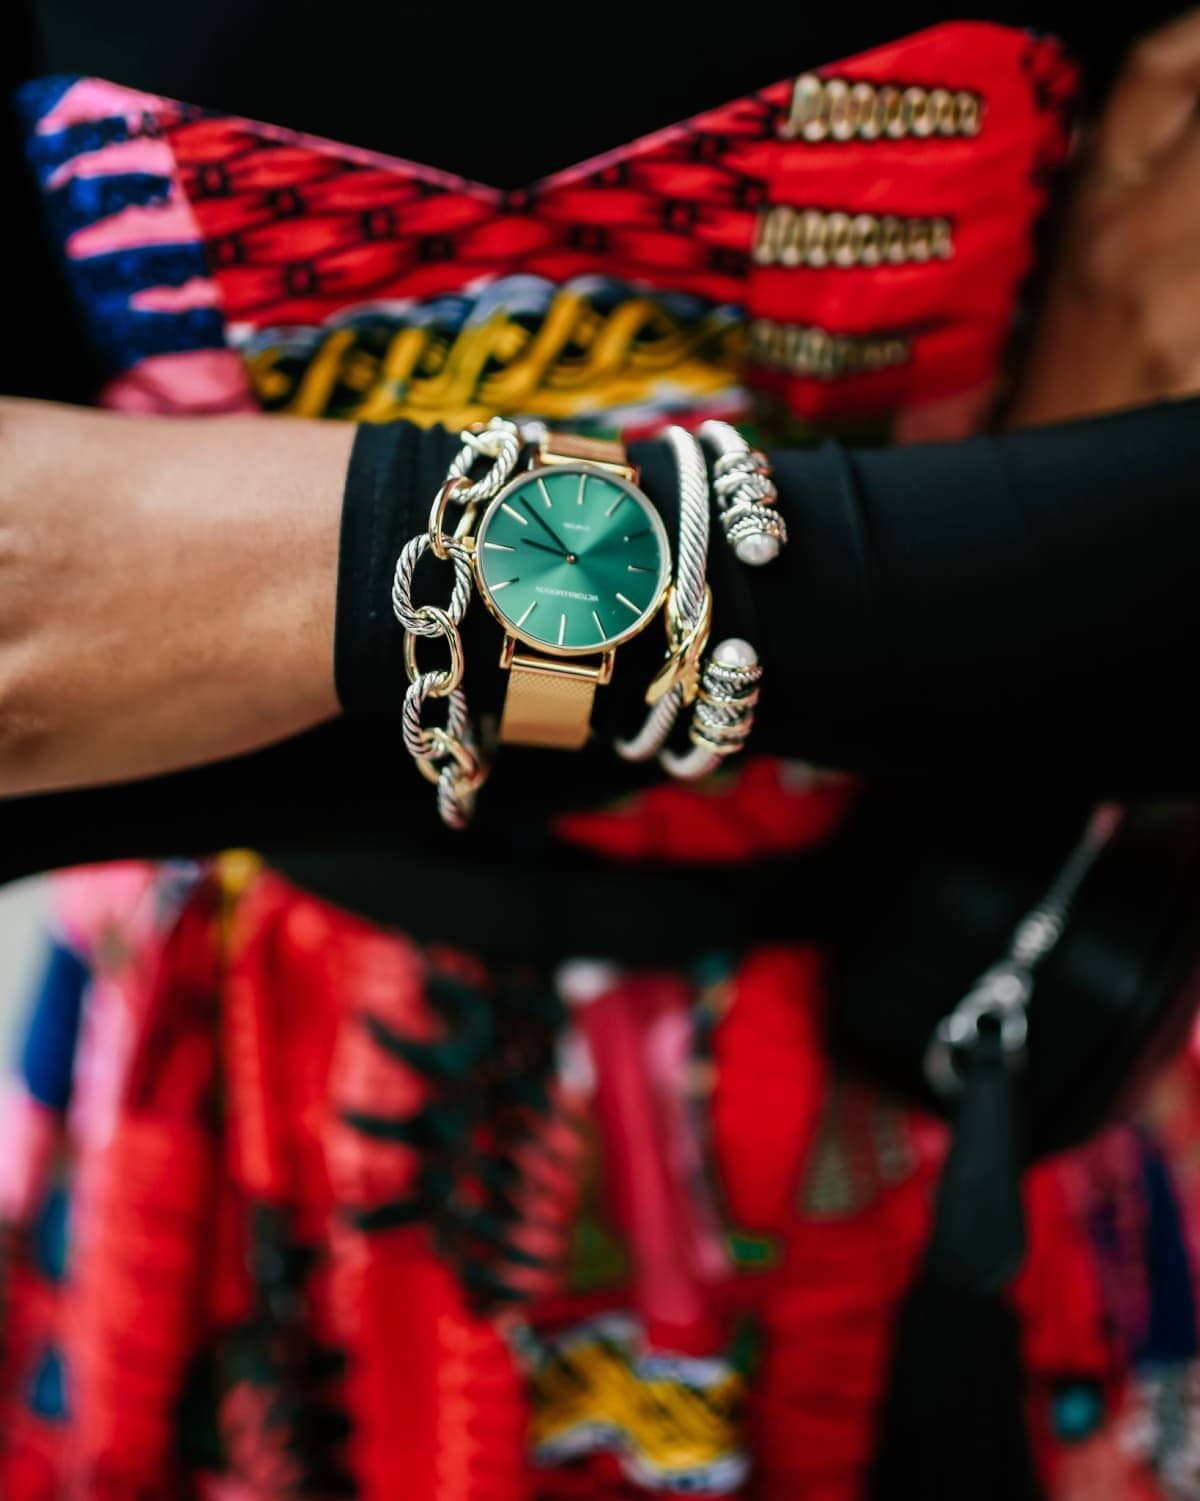 Chain link bracelets and adjustable bangles from Amazon paired with stunning mesh watch with vibrant green face